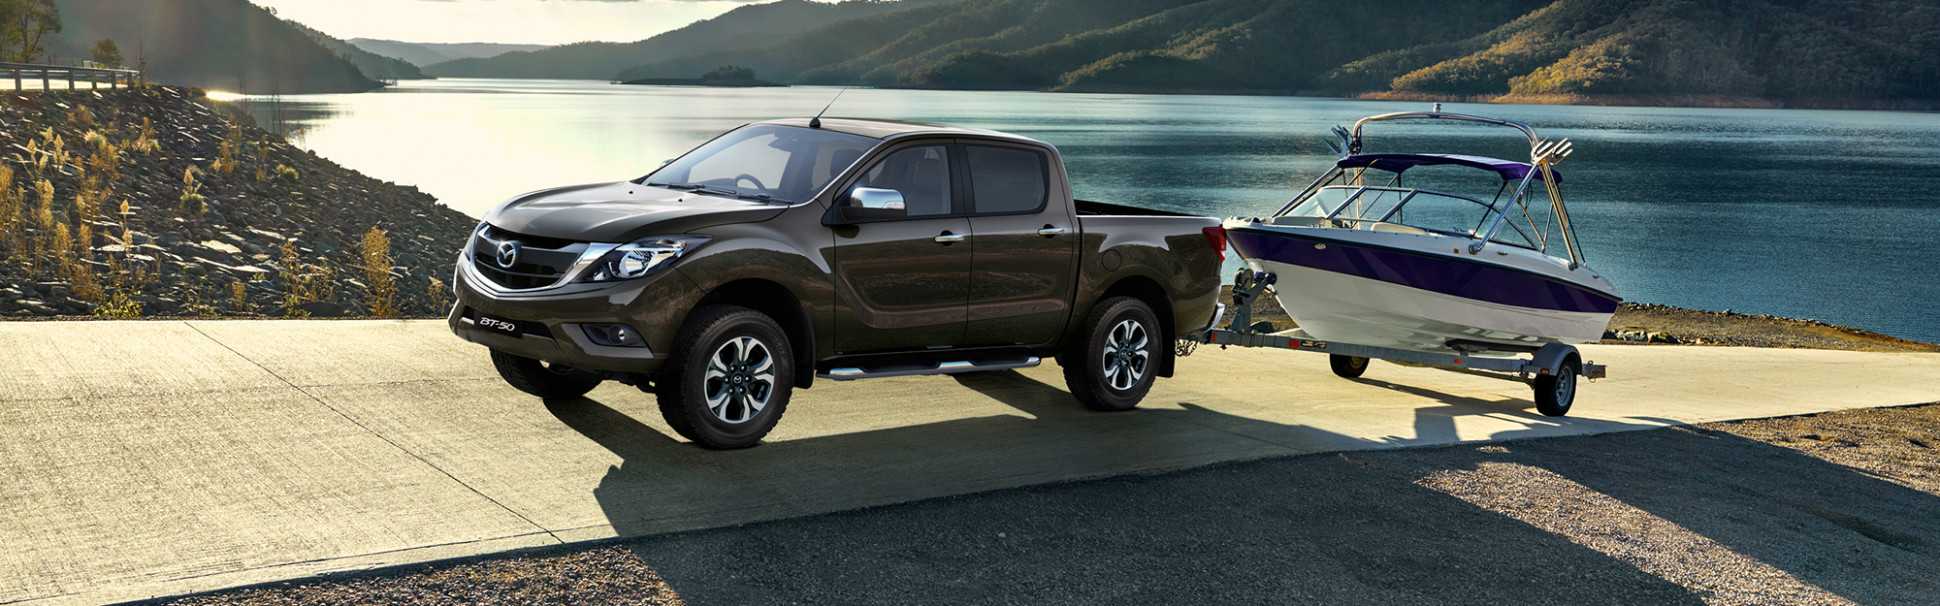 Mazda BT-7 Pickup 7 7.7L Double Cab Pro 7WD M/T in Oman: New ..